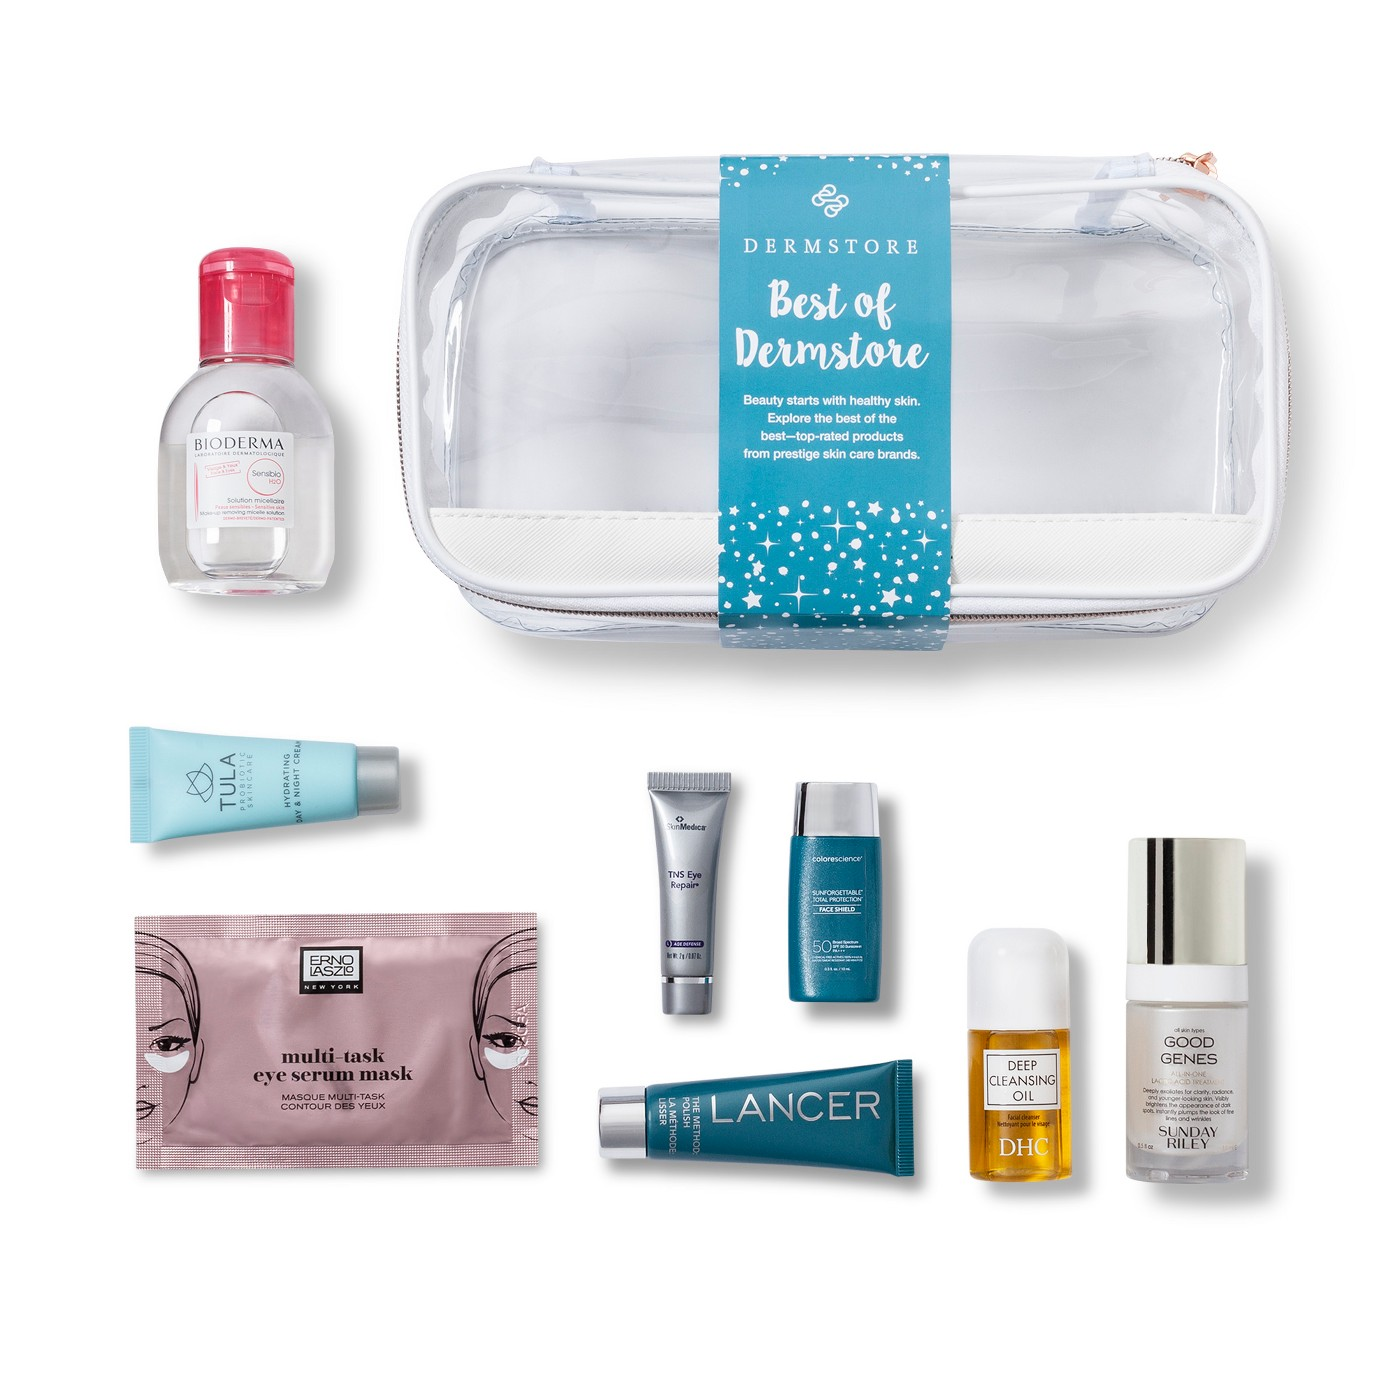 Target Beauty Box™ - Holiday - Dermstore Skin Care Collection - image 1 of 1